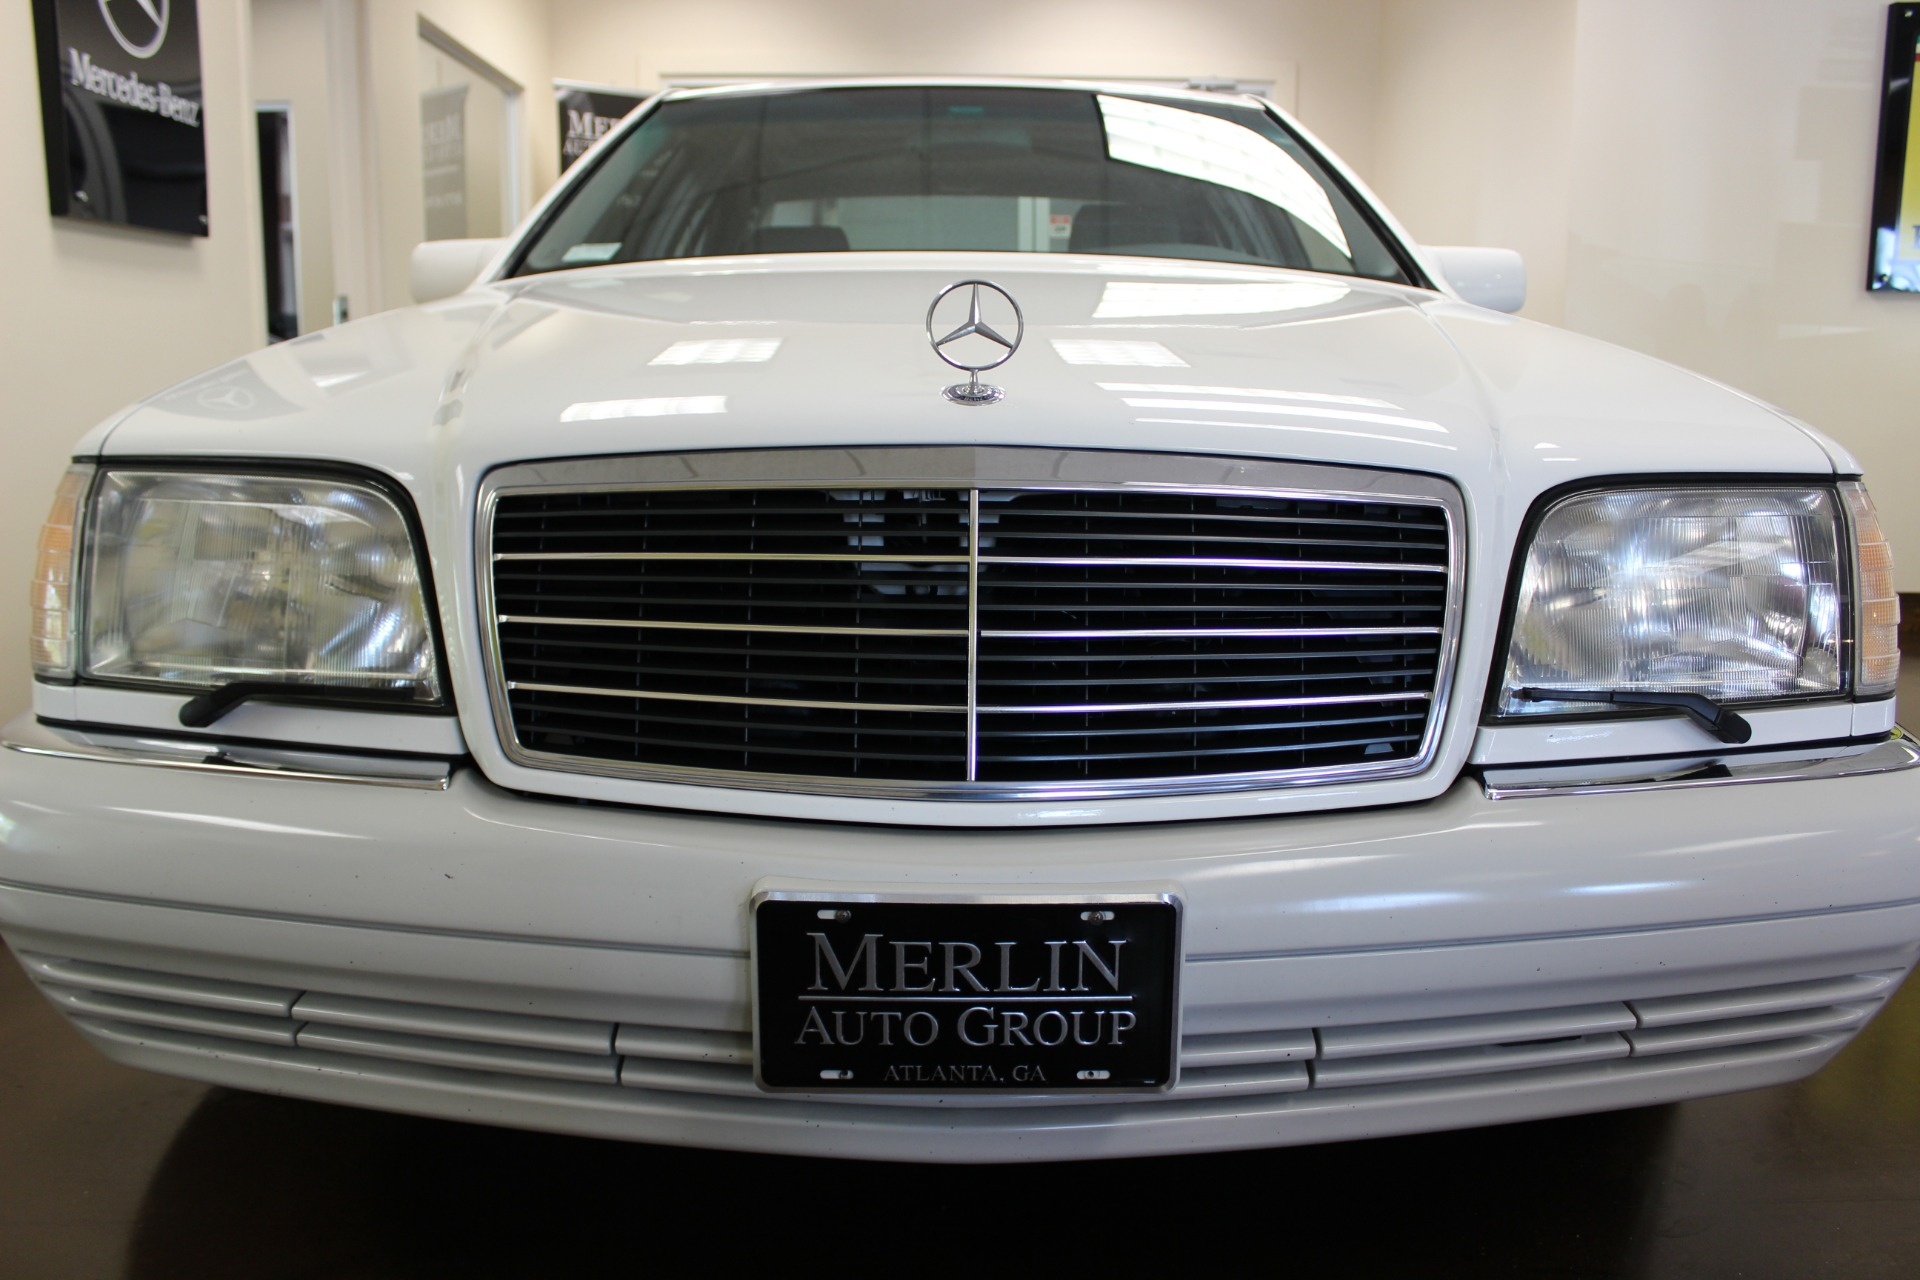 Used 1995 mercedes benz s class white sedan v8 a for Used white mercedes benz for sale